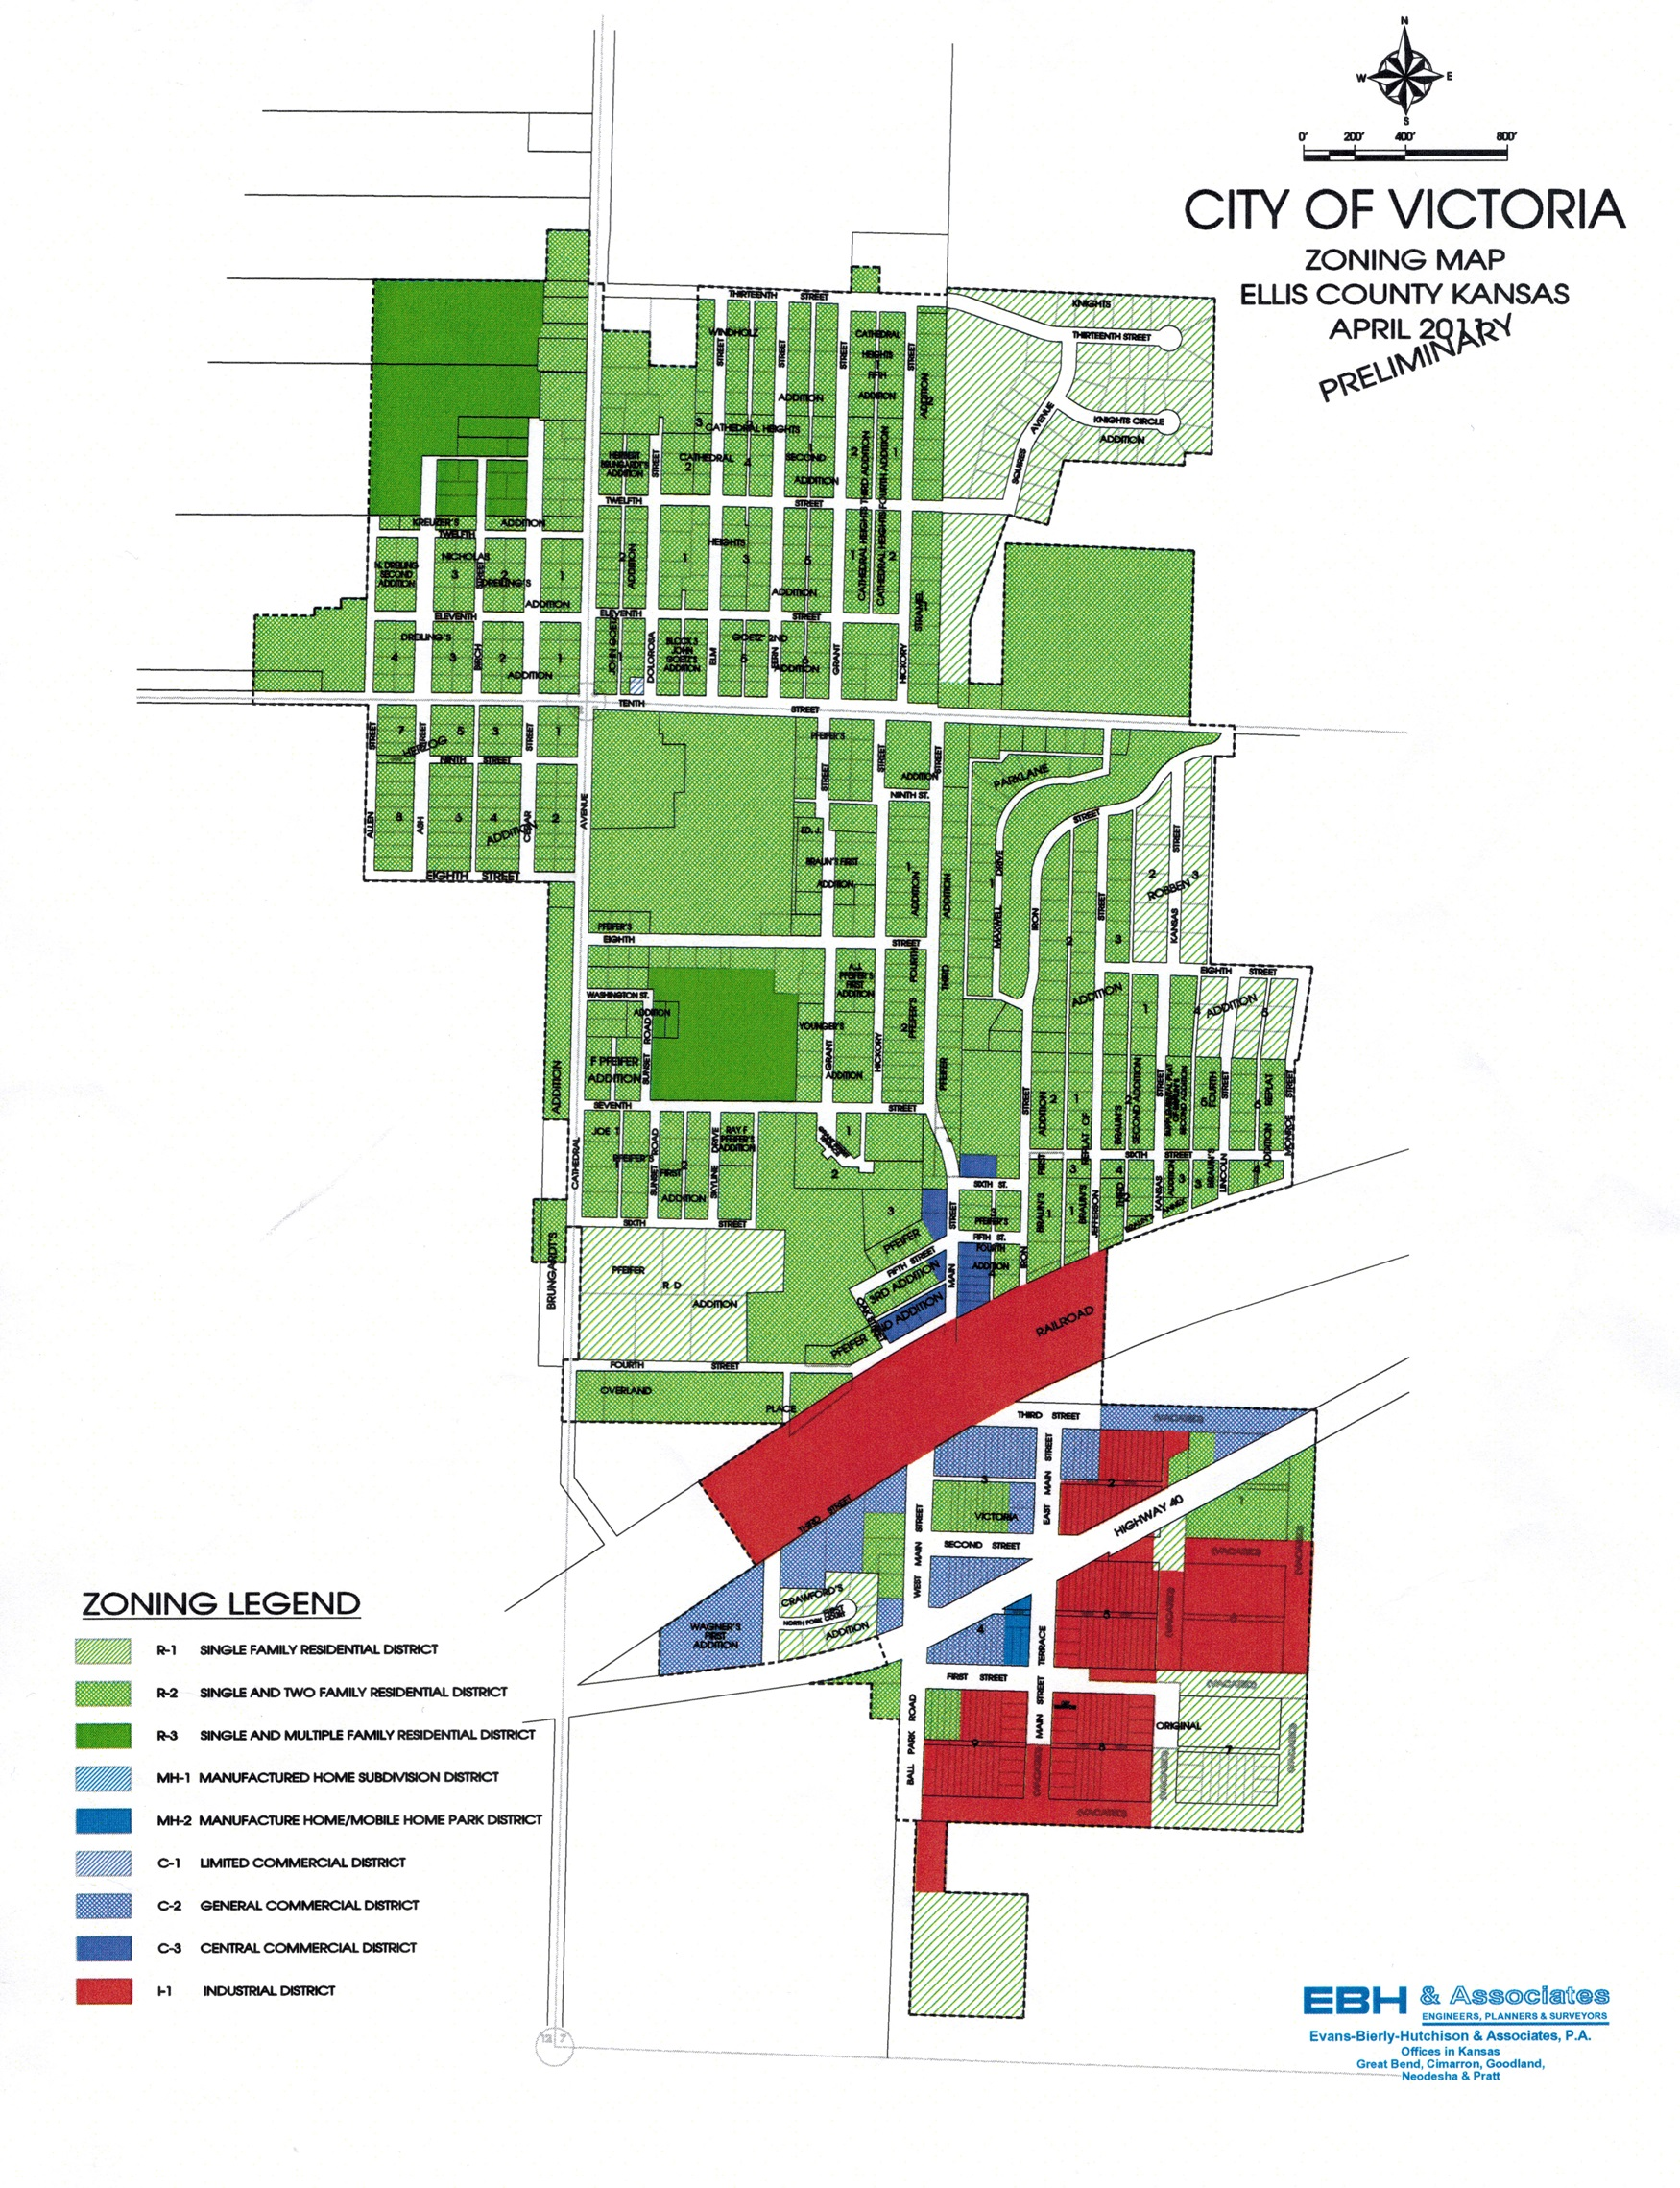 Maps San Francisco Zoning Map on columbia zoning map, east grand rapids zoning map, merced zoning map, hamburg zoning map, los angeles city zoning map, saint petersburg zoning map, lawrence zoning map, geneva zoning map, ithaca zoning map, kingston zoning map, orange county zoning map, davenport zoning map, fargo zoning map, sitka zoning map, pennsylvania zoning map, jackson zoning map, hartford zoning map, aspen zoning map, illinois zoning map, los angles zoning map,